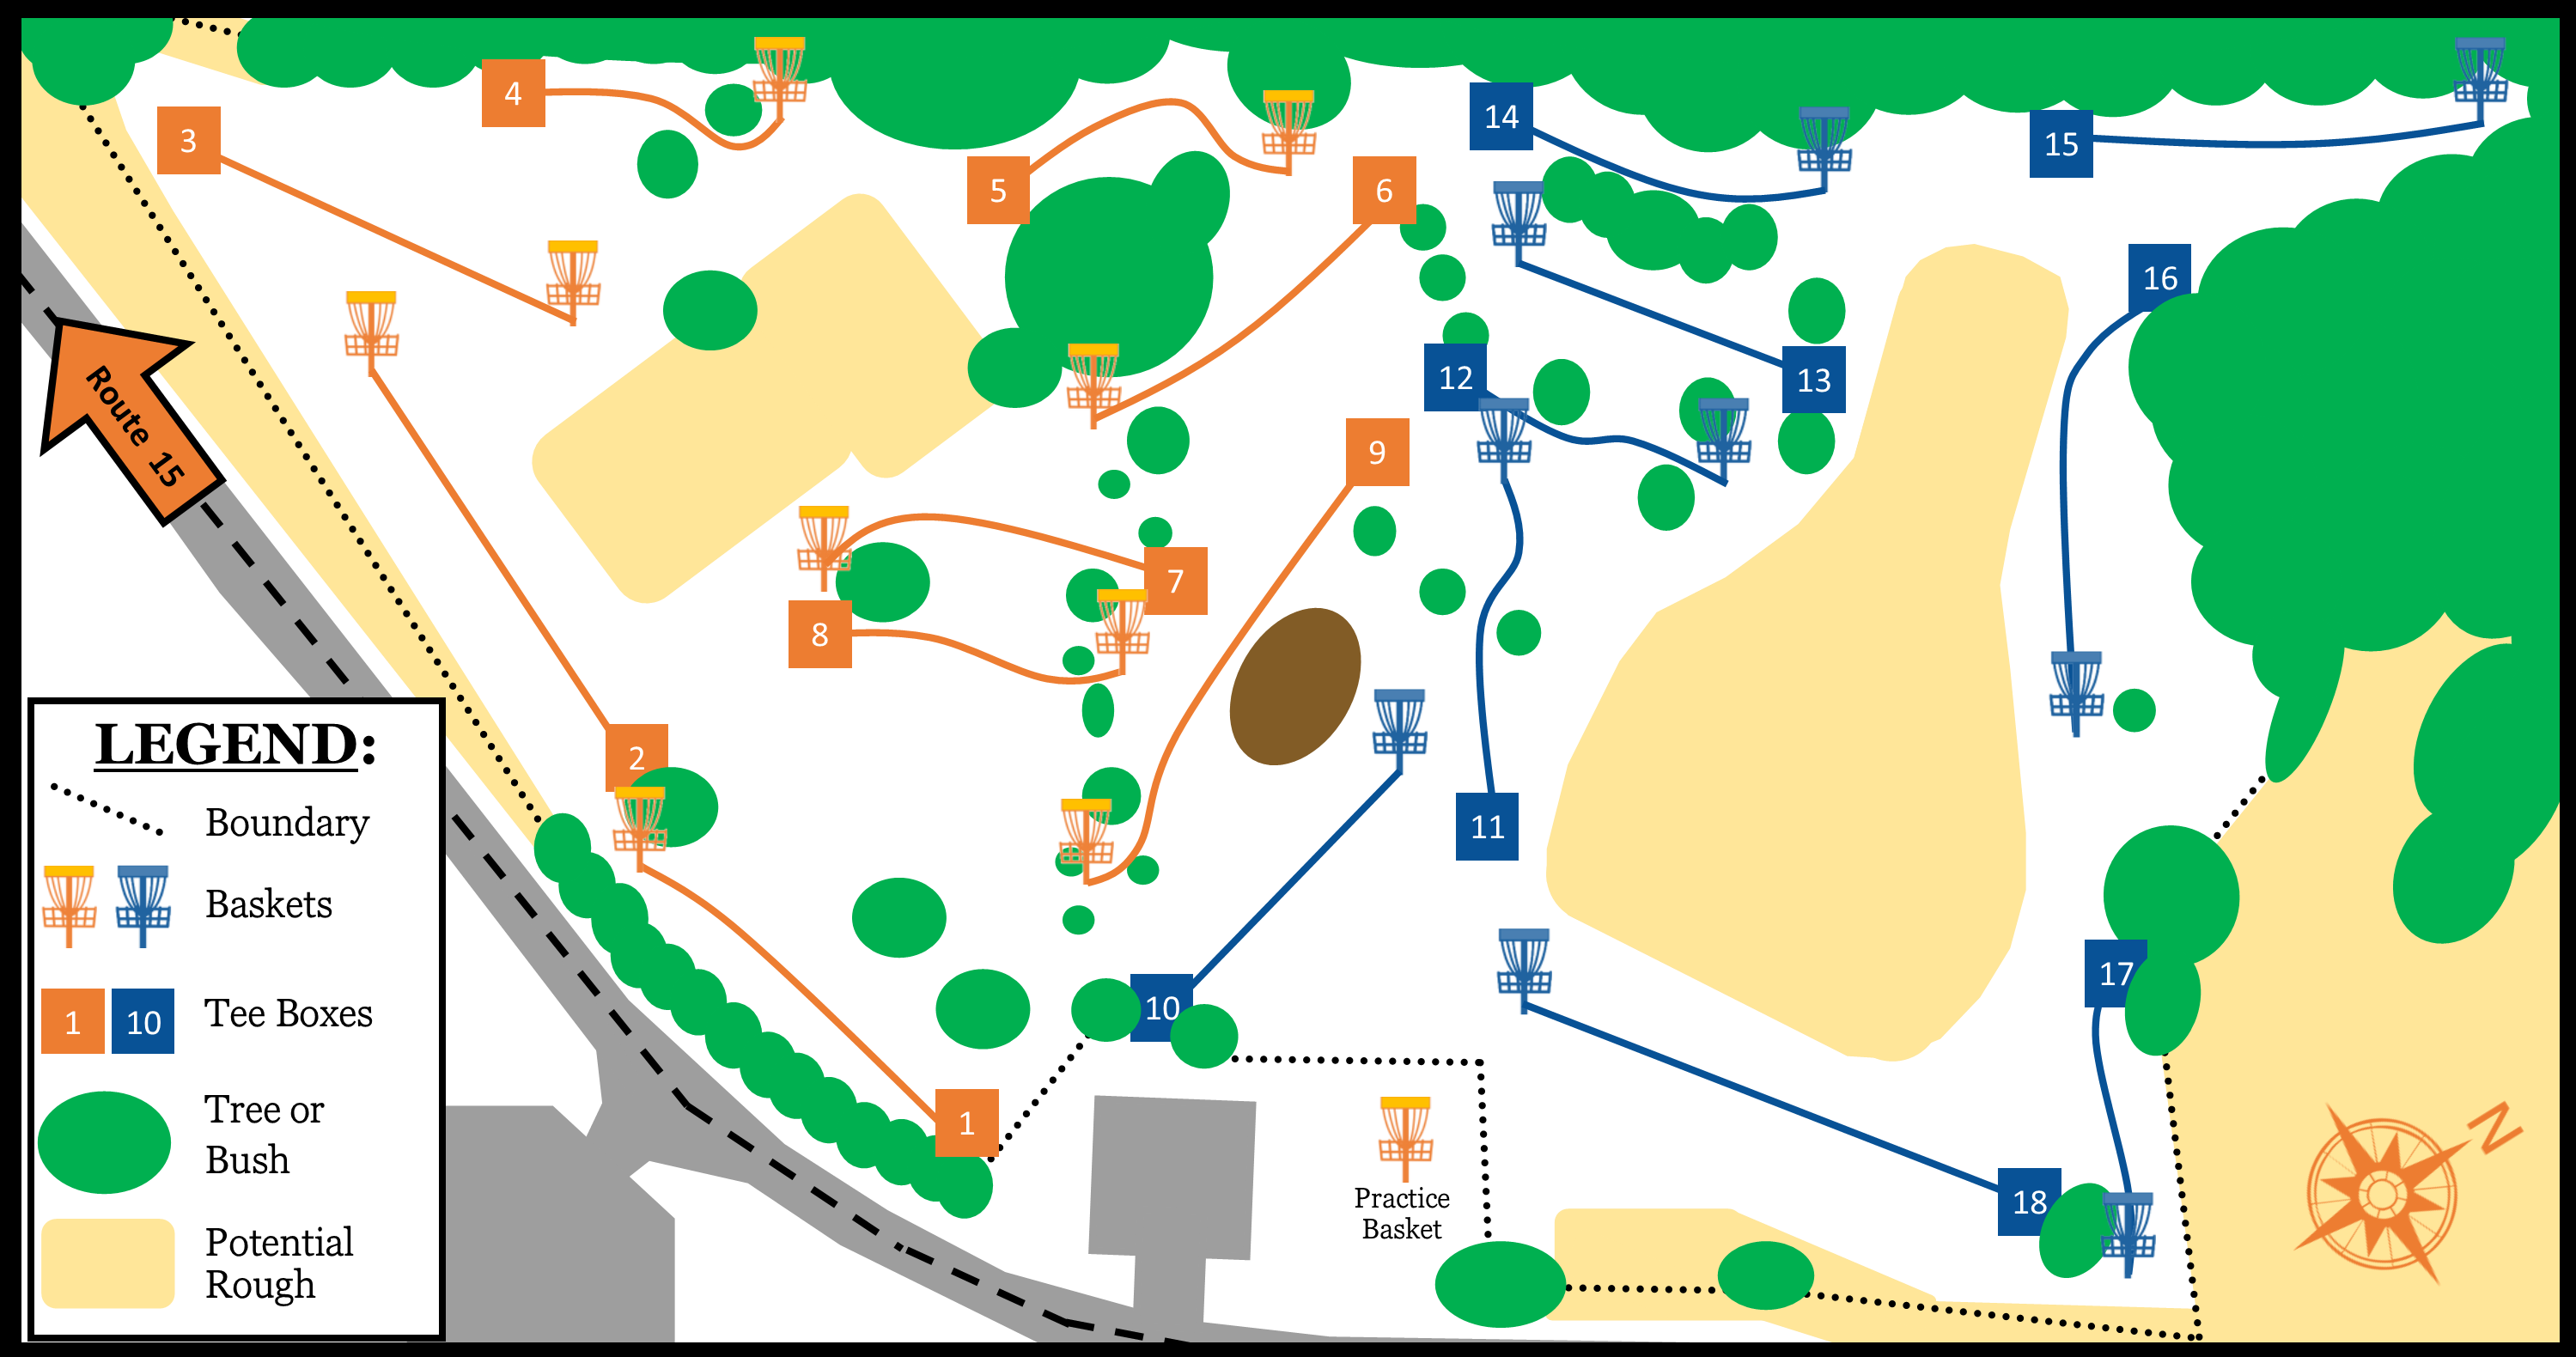 A graphic map of the course